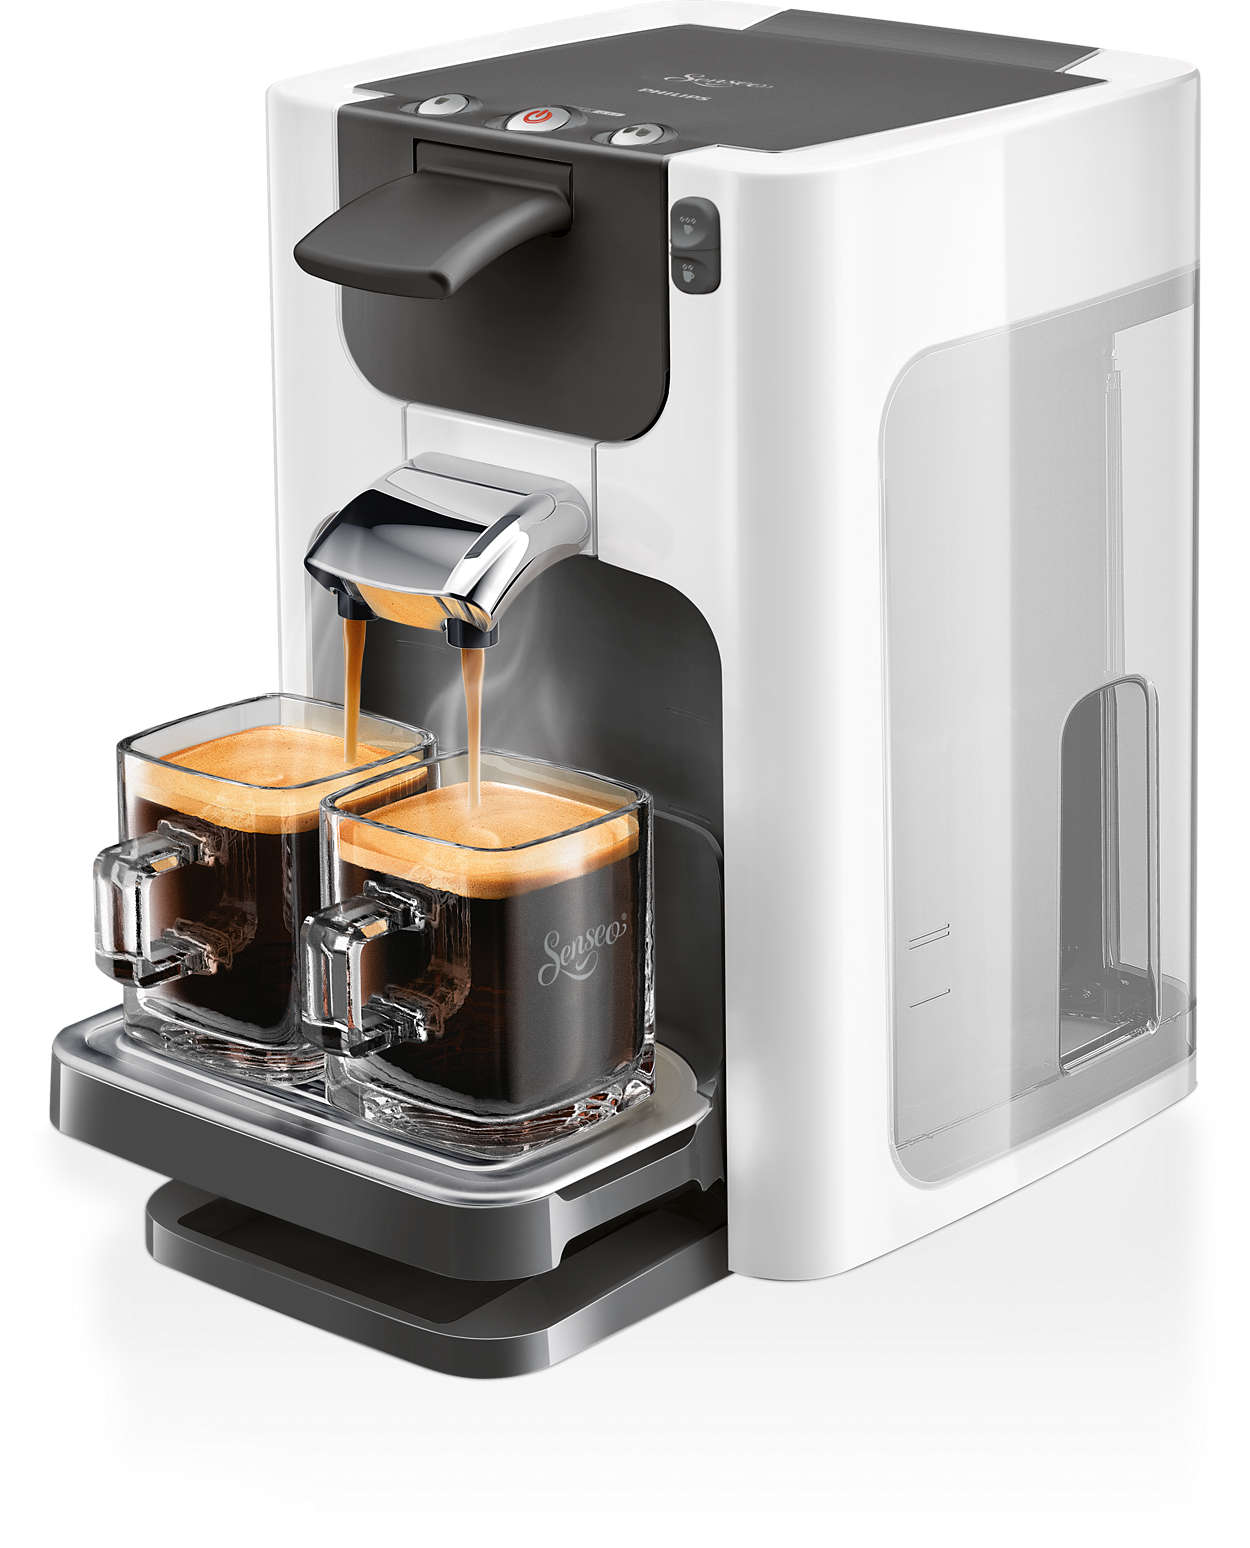 quadrante coffee pod machine hd  senseo® - delicious coffee at a touch in a modern design